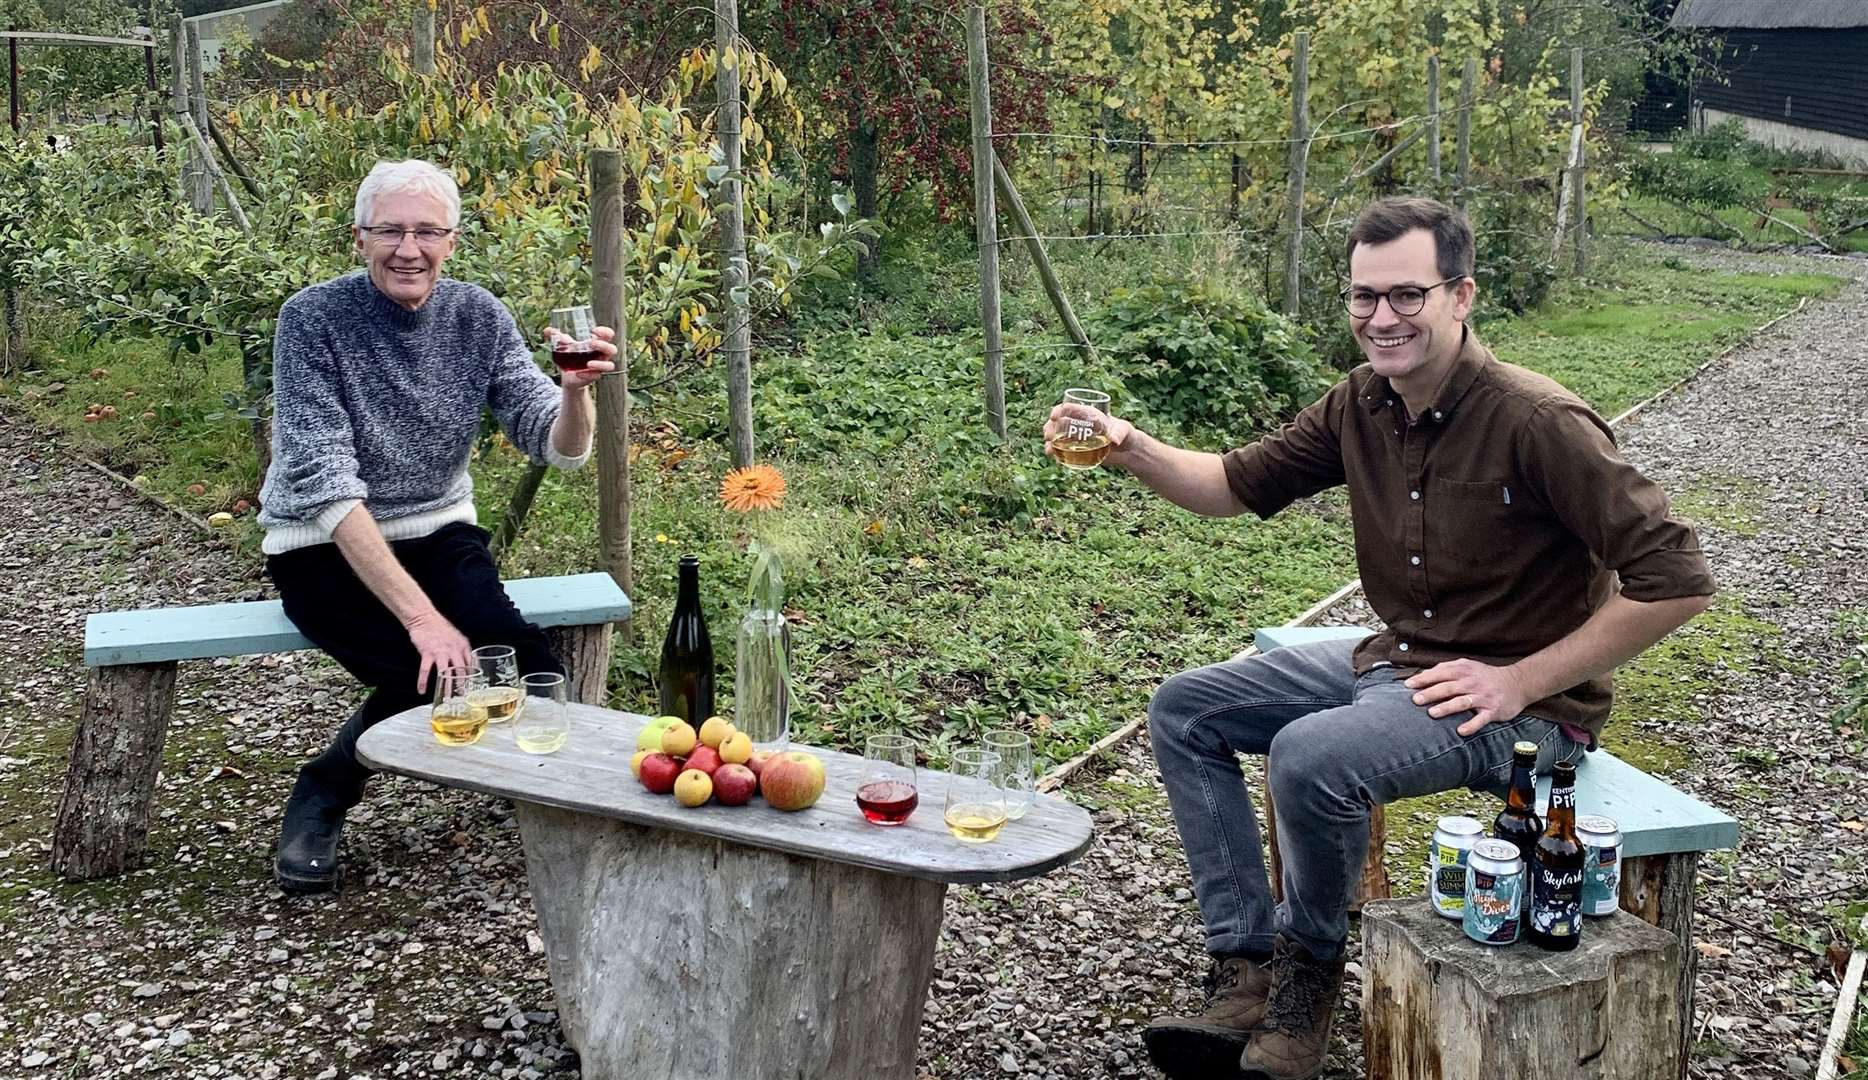 Paul visits a 100-year old cider apple orchard and meets farmer Sam Picture: Olga Productions/ITV Pictures